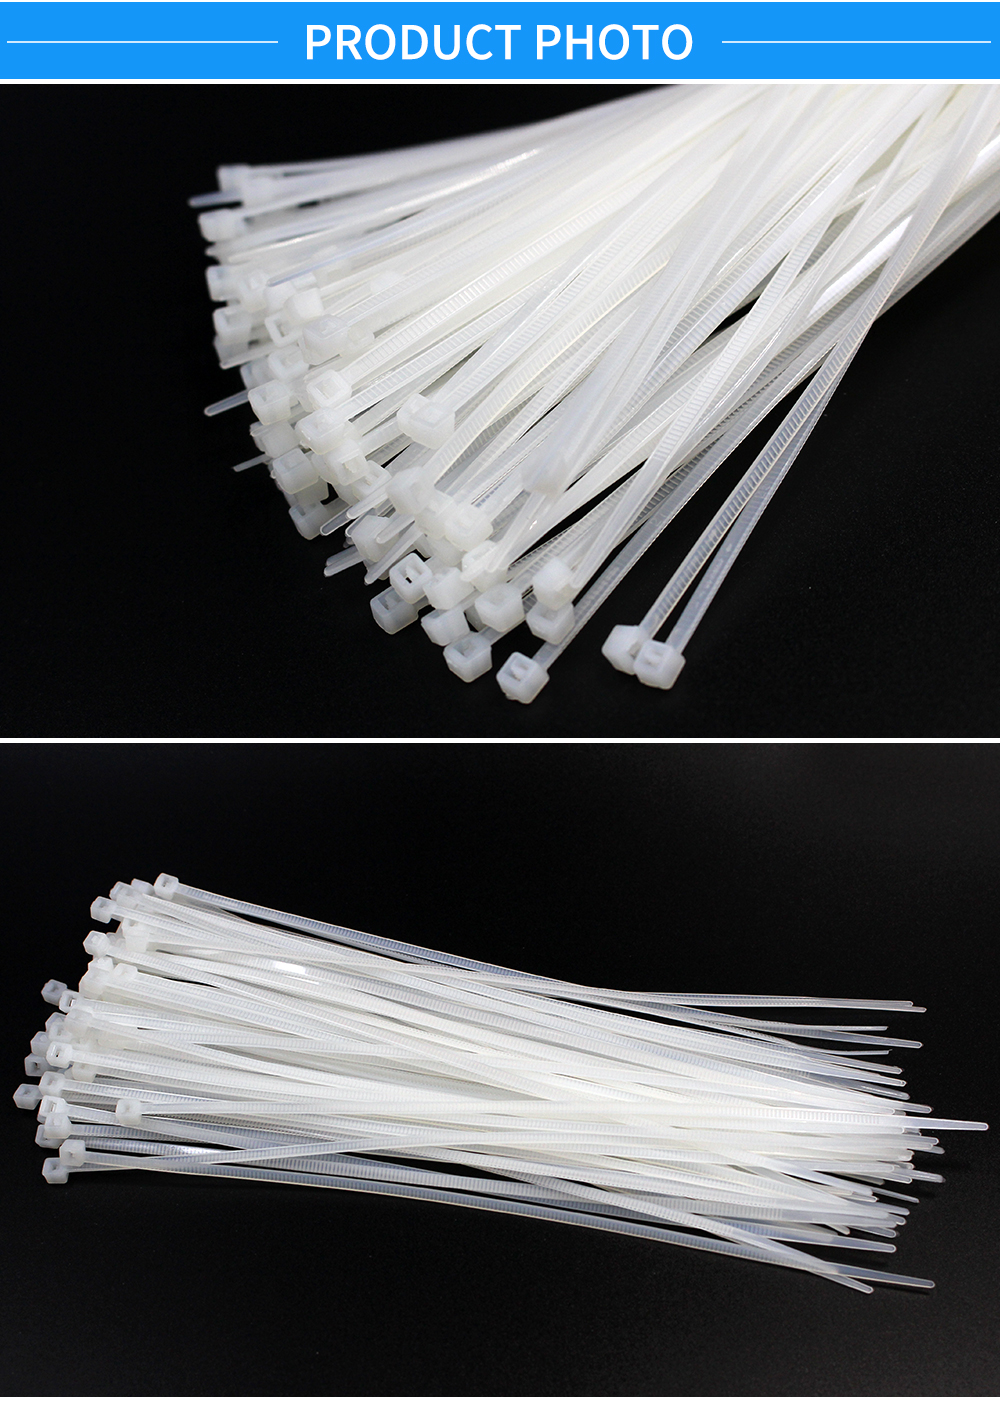 100PCS/bag 4mmx300mm Width 5mm White Milk Cable Wire Zip Ties Self Locking Nylon Cable Tie